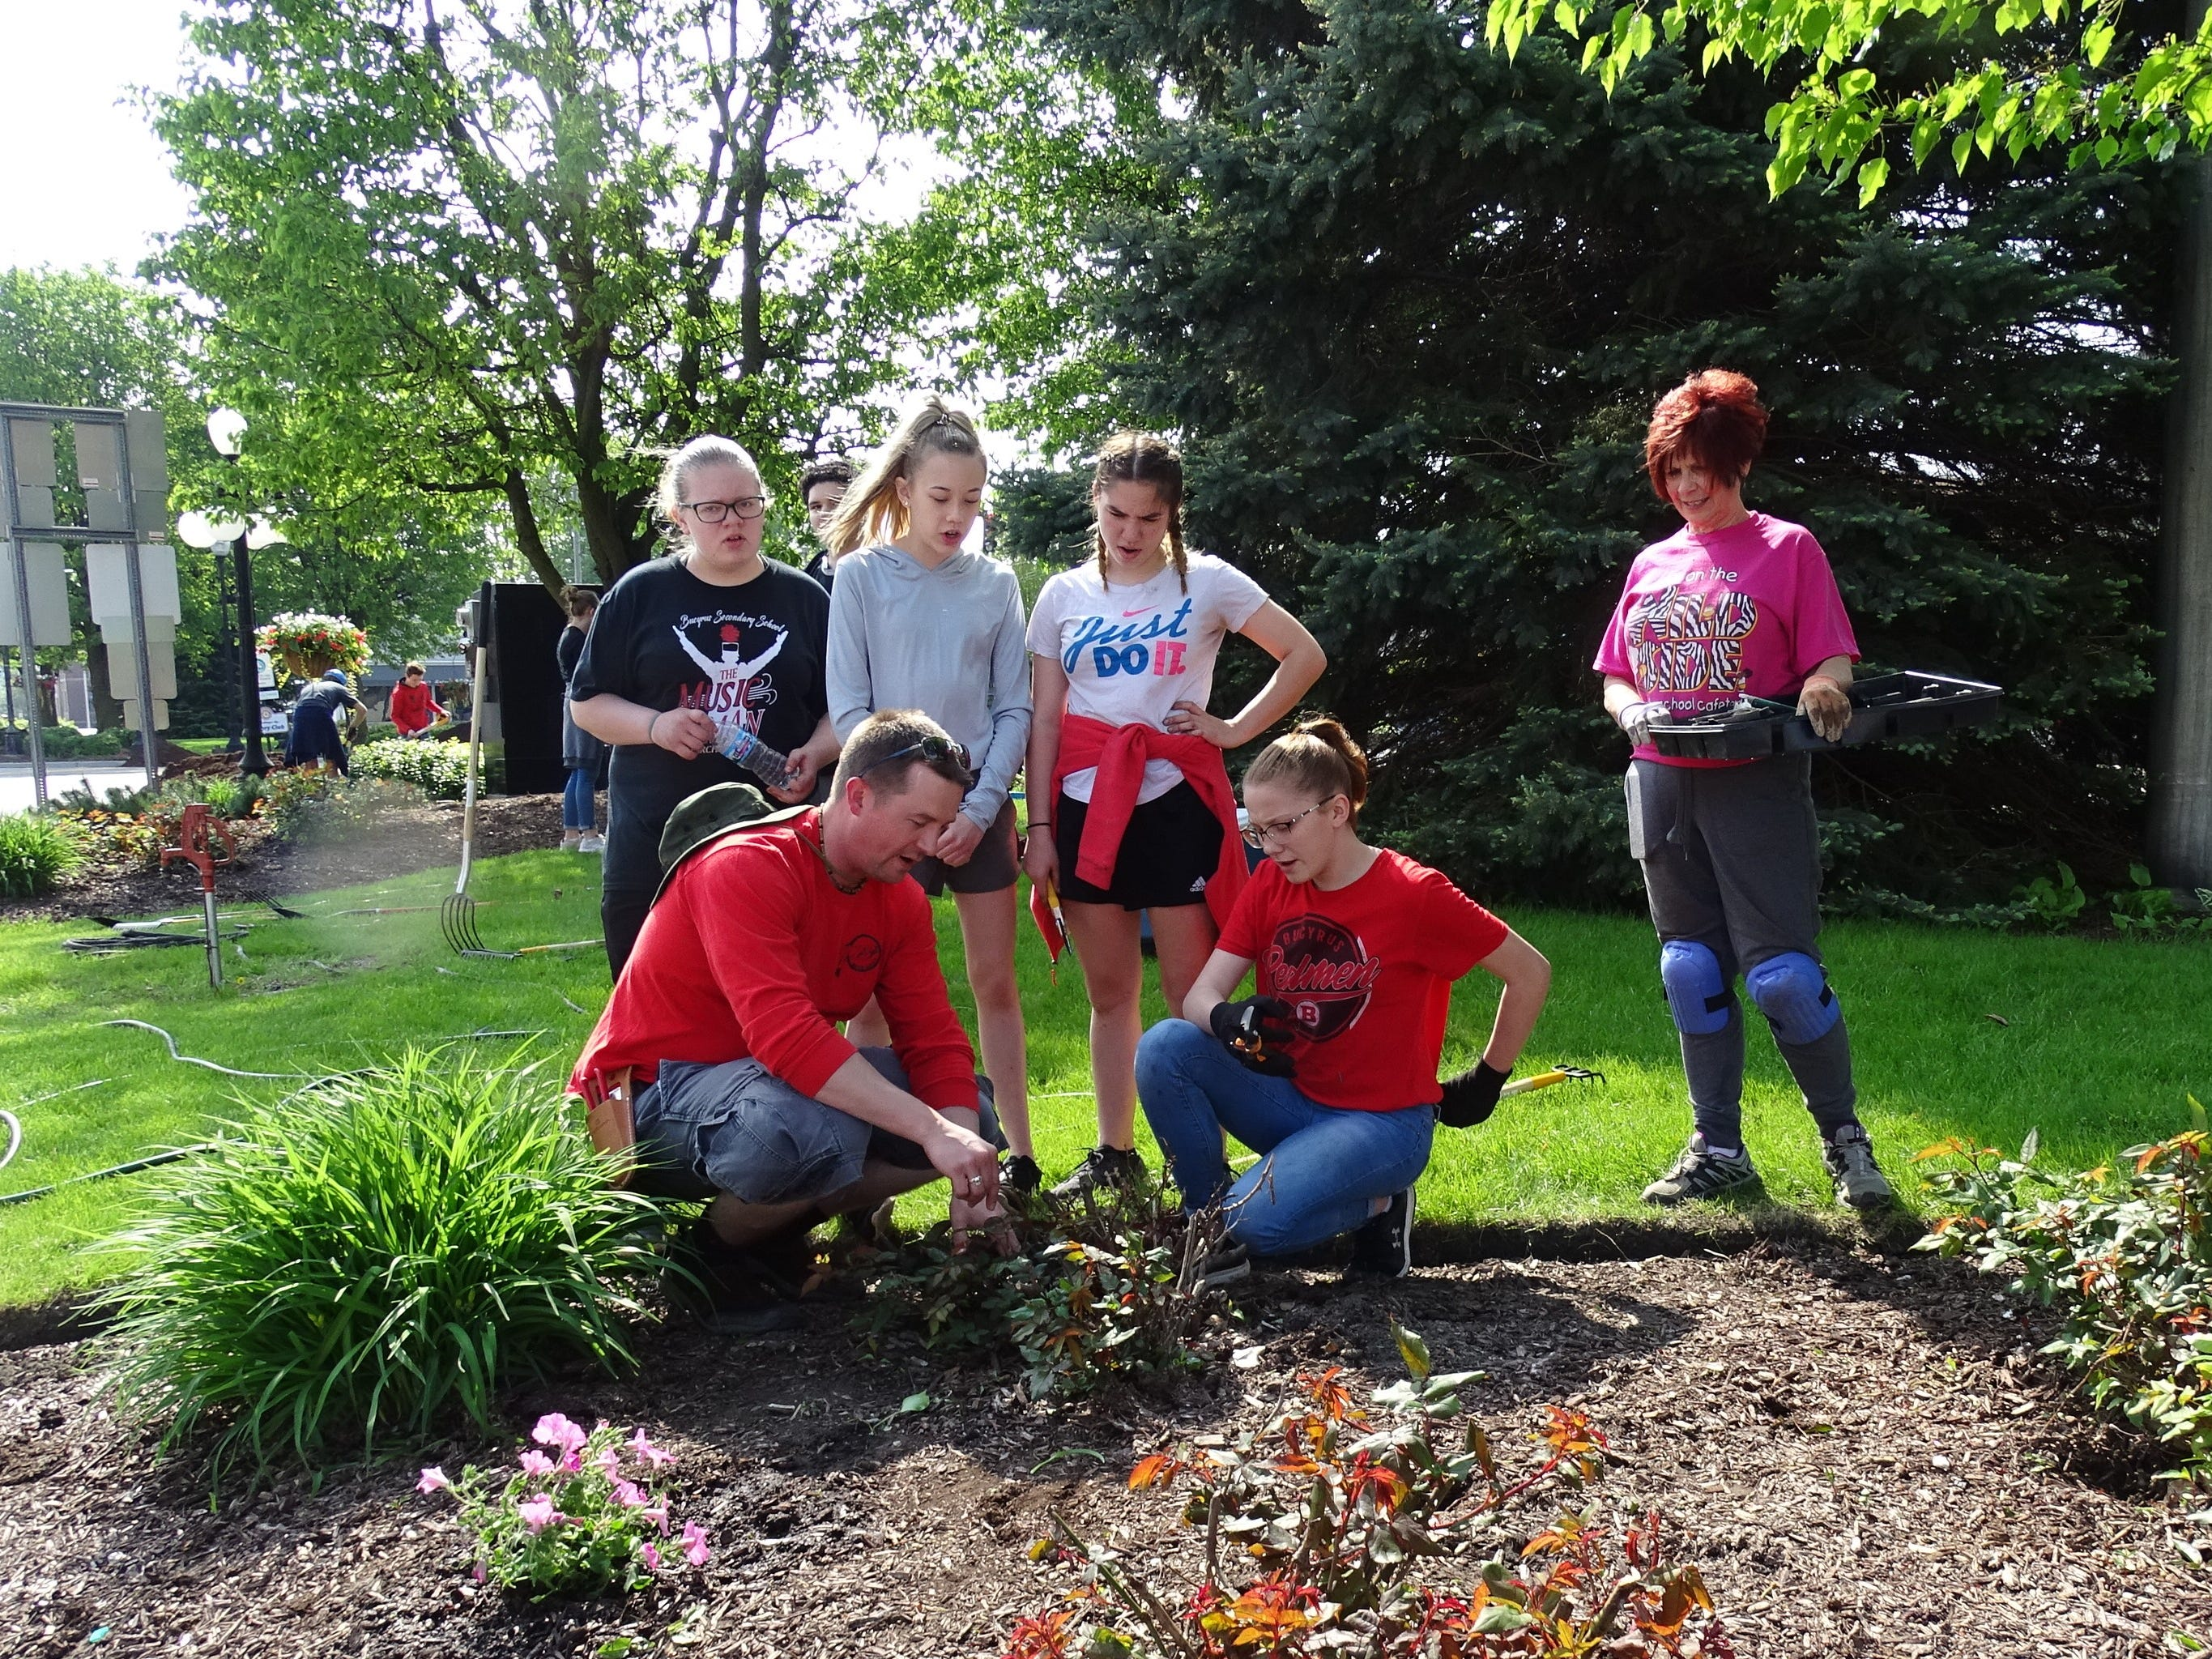 Bucyrus teacher Scott Mental, front left, discusses the proper way to prune bushes while Shirley Chapman of the Earth, Wind and Flowers Garden Club, right, watches.